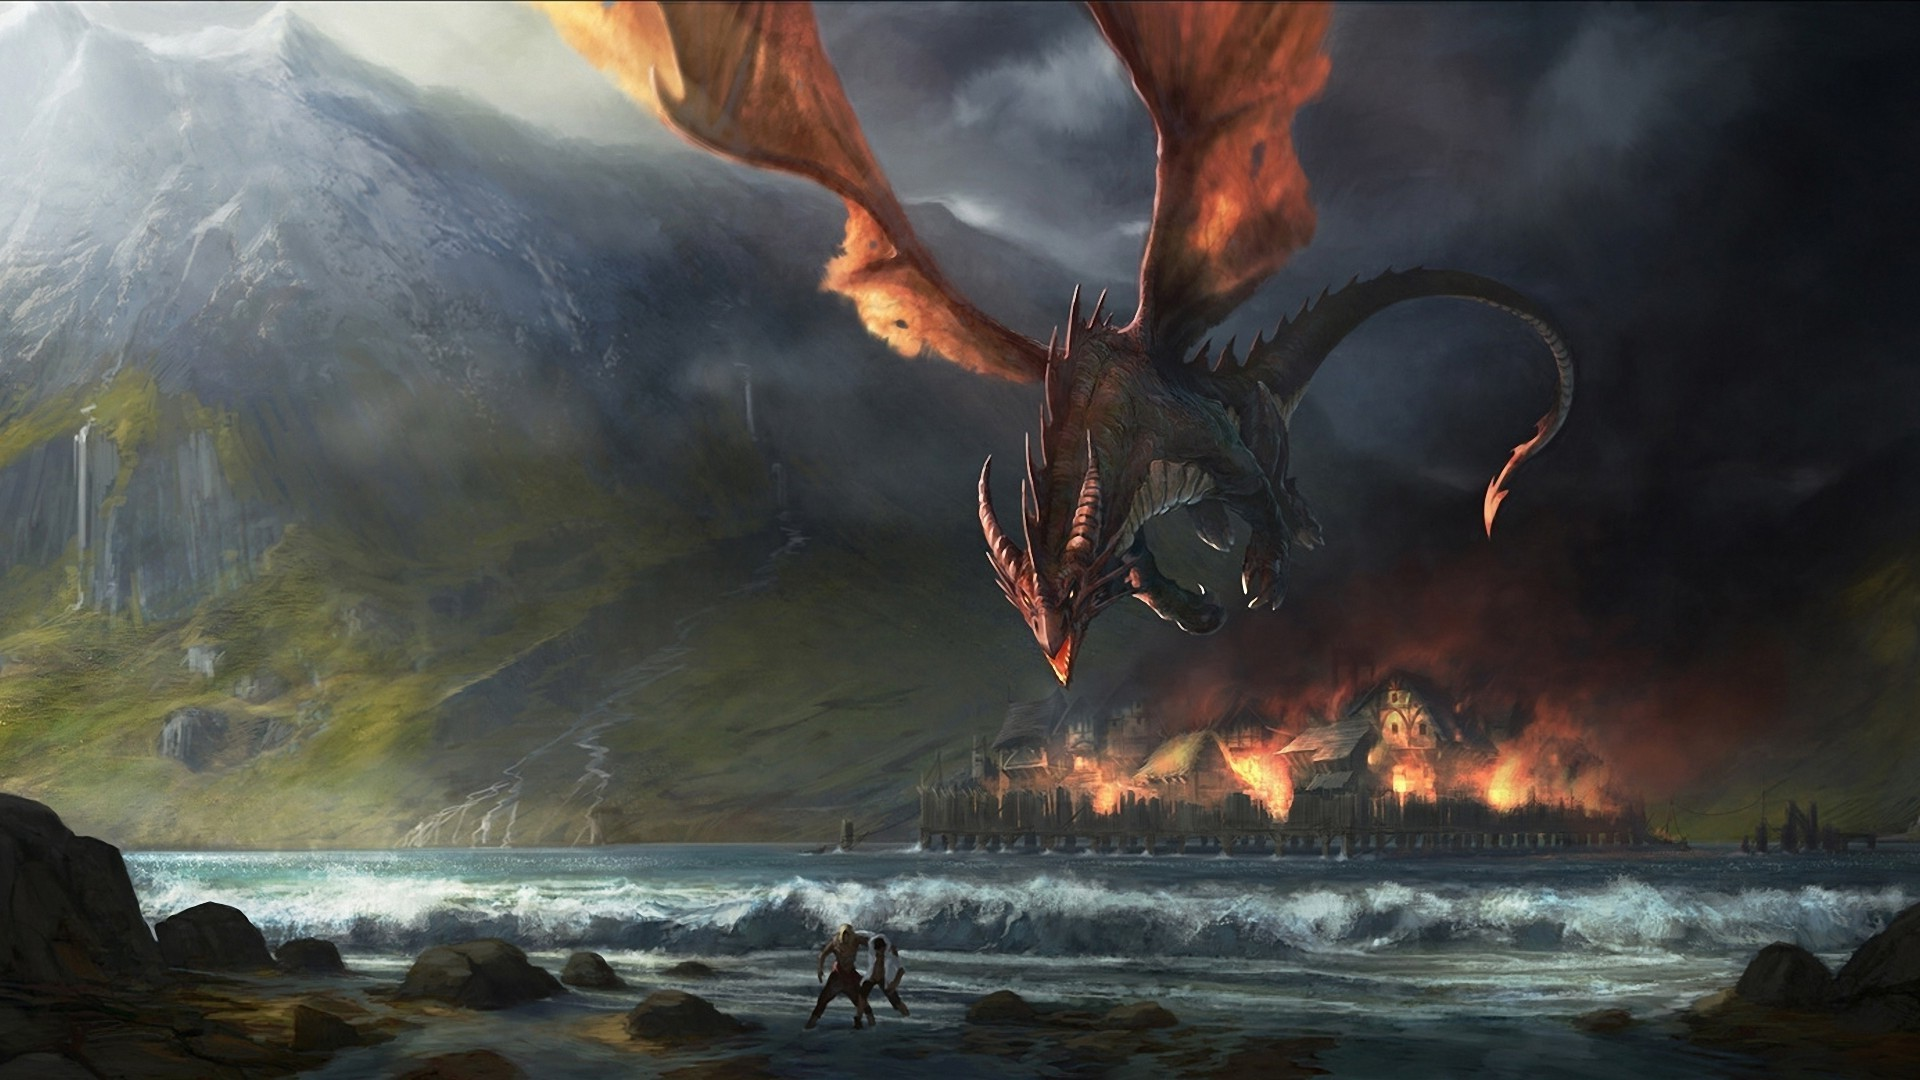 1920x1080 ... Scary Big Fire Dragon Monster Fantasy Wallpaper - http://www .